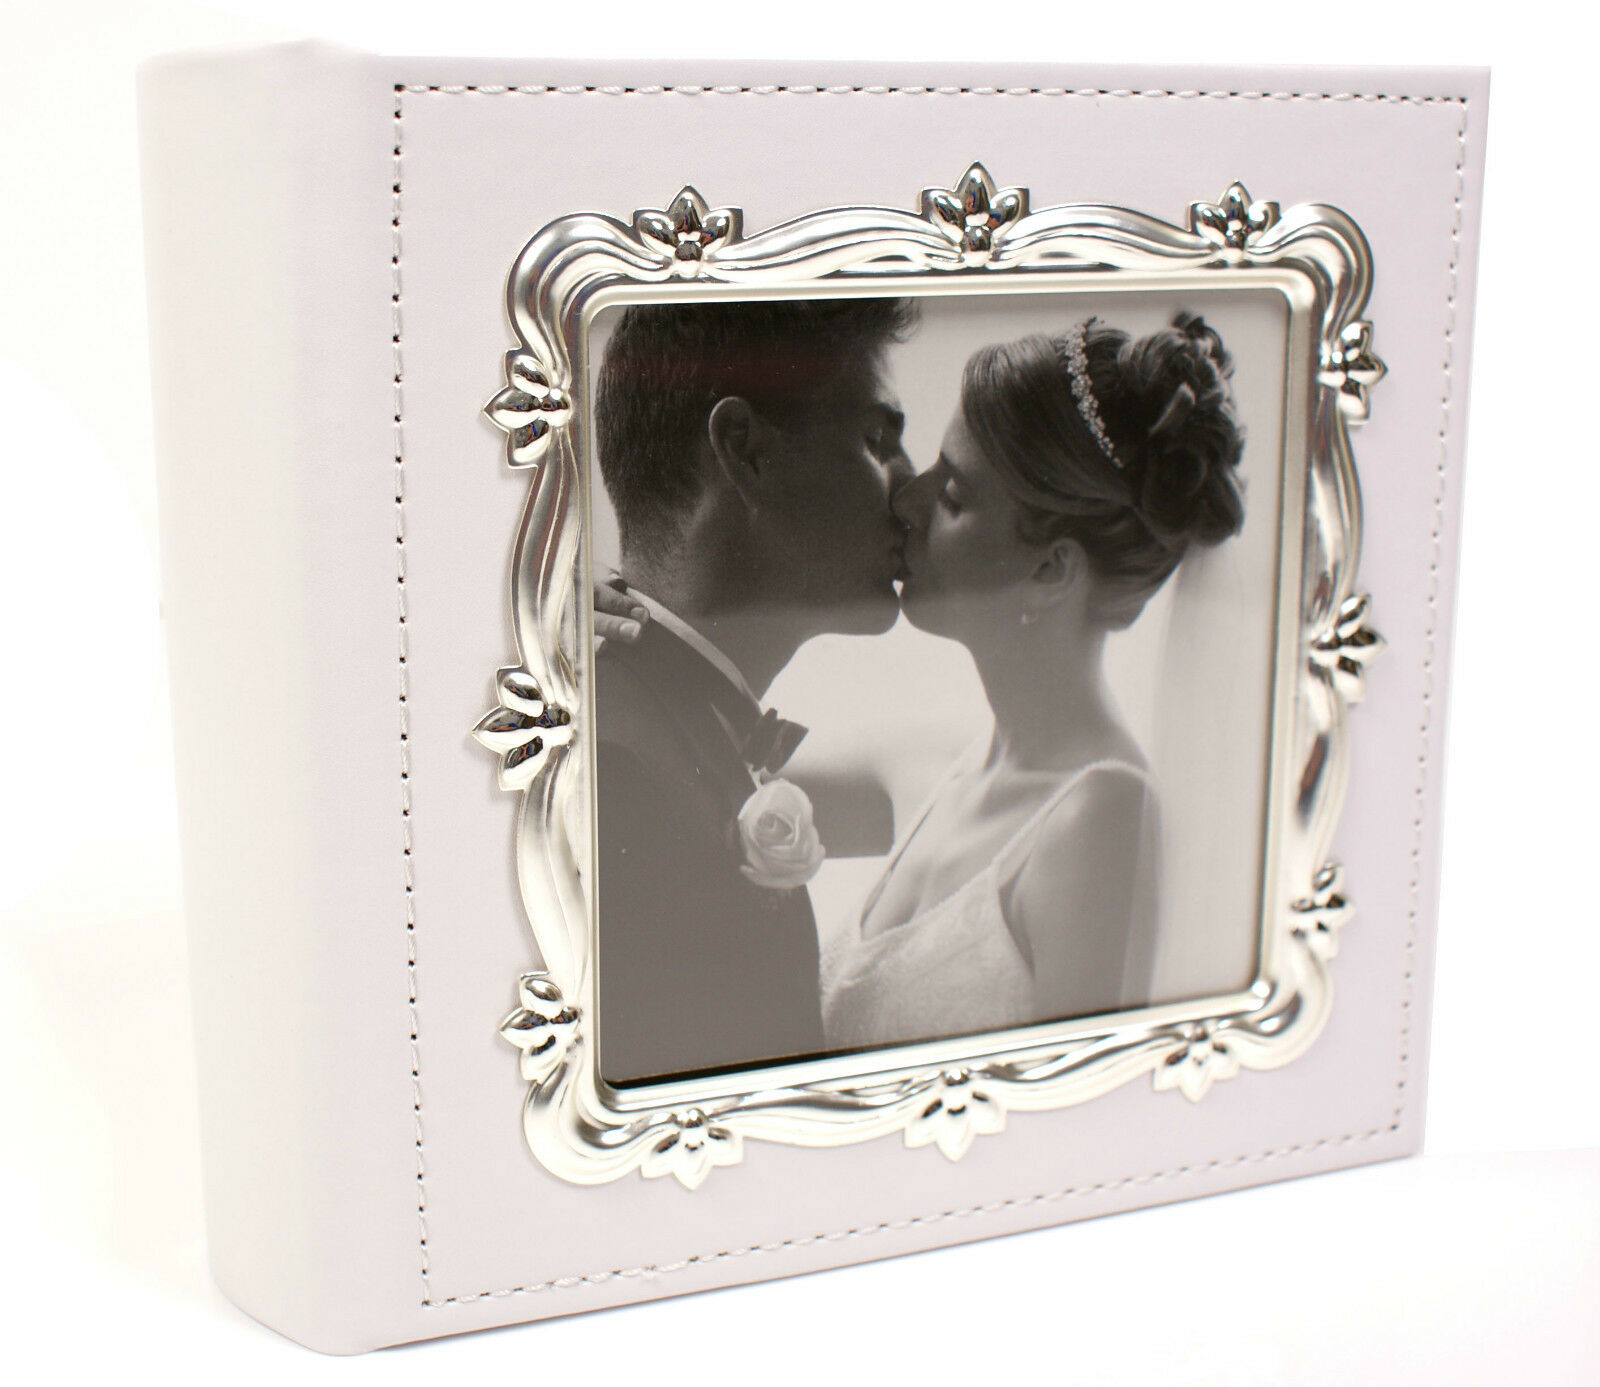 Deluxe Leather Effect White Wedding Day Photo Album 77981